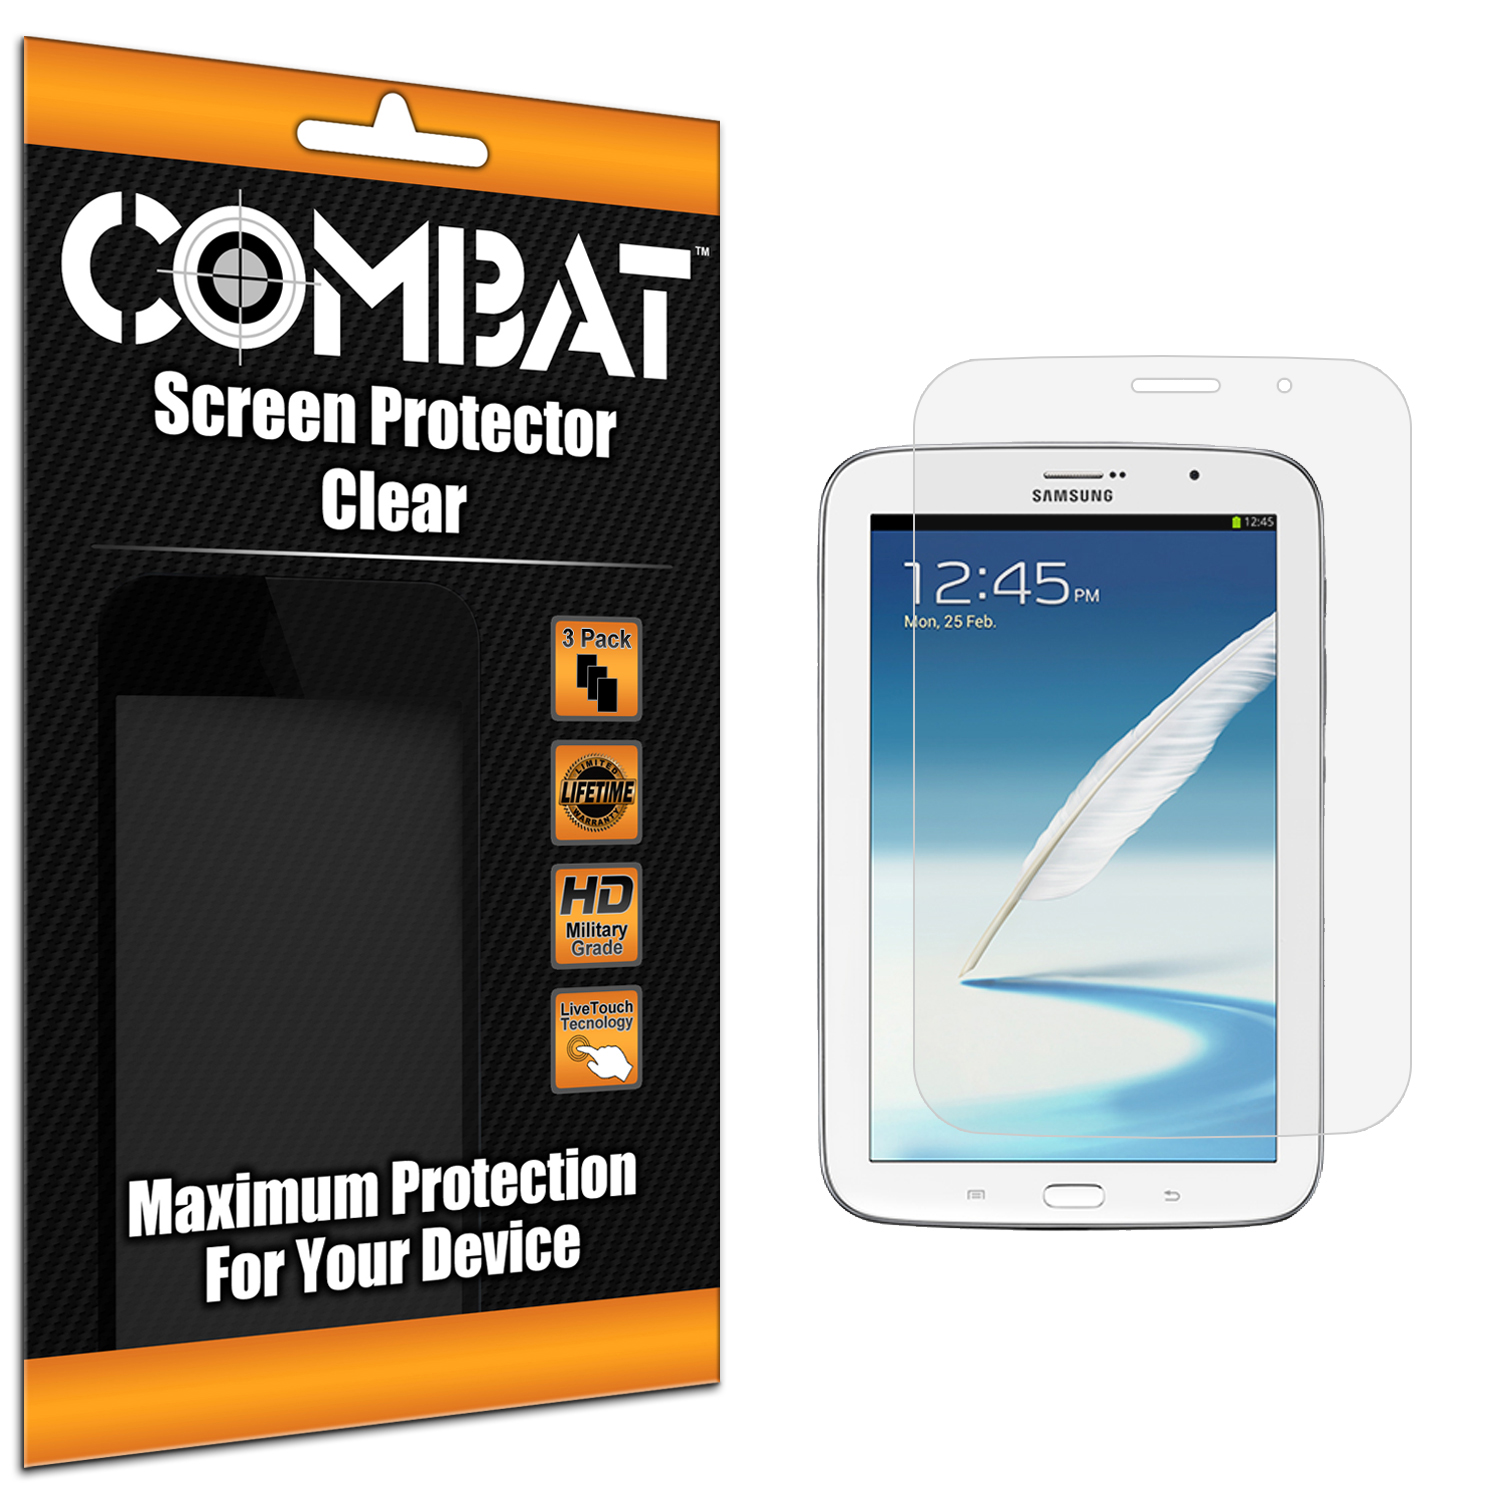 Samsung Galaxy Note 8.0 Combat 3 Pack HD Clear Screen Protector